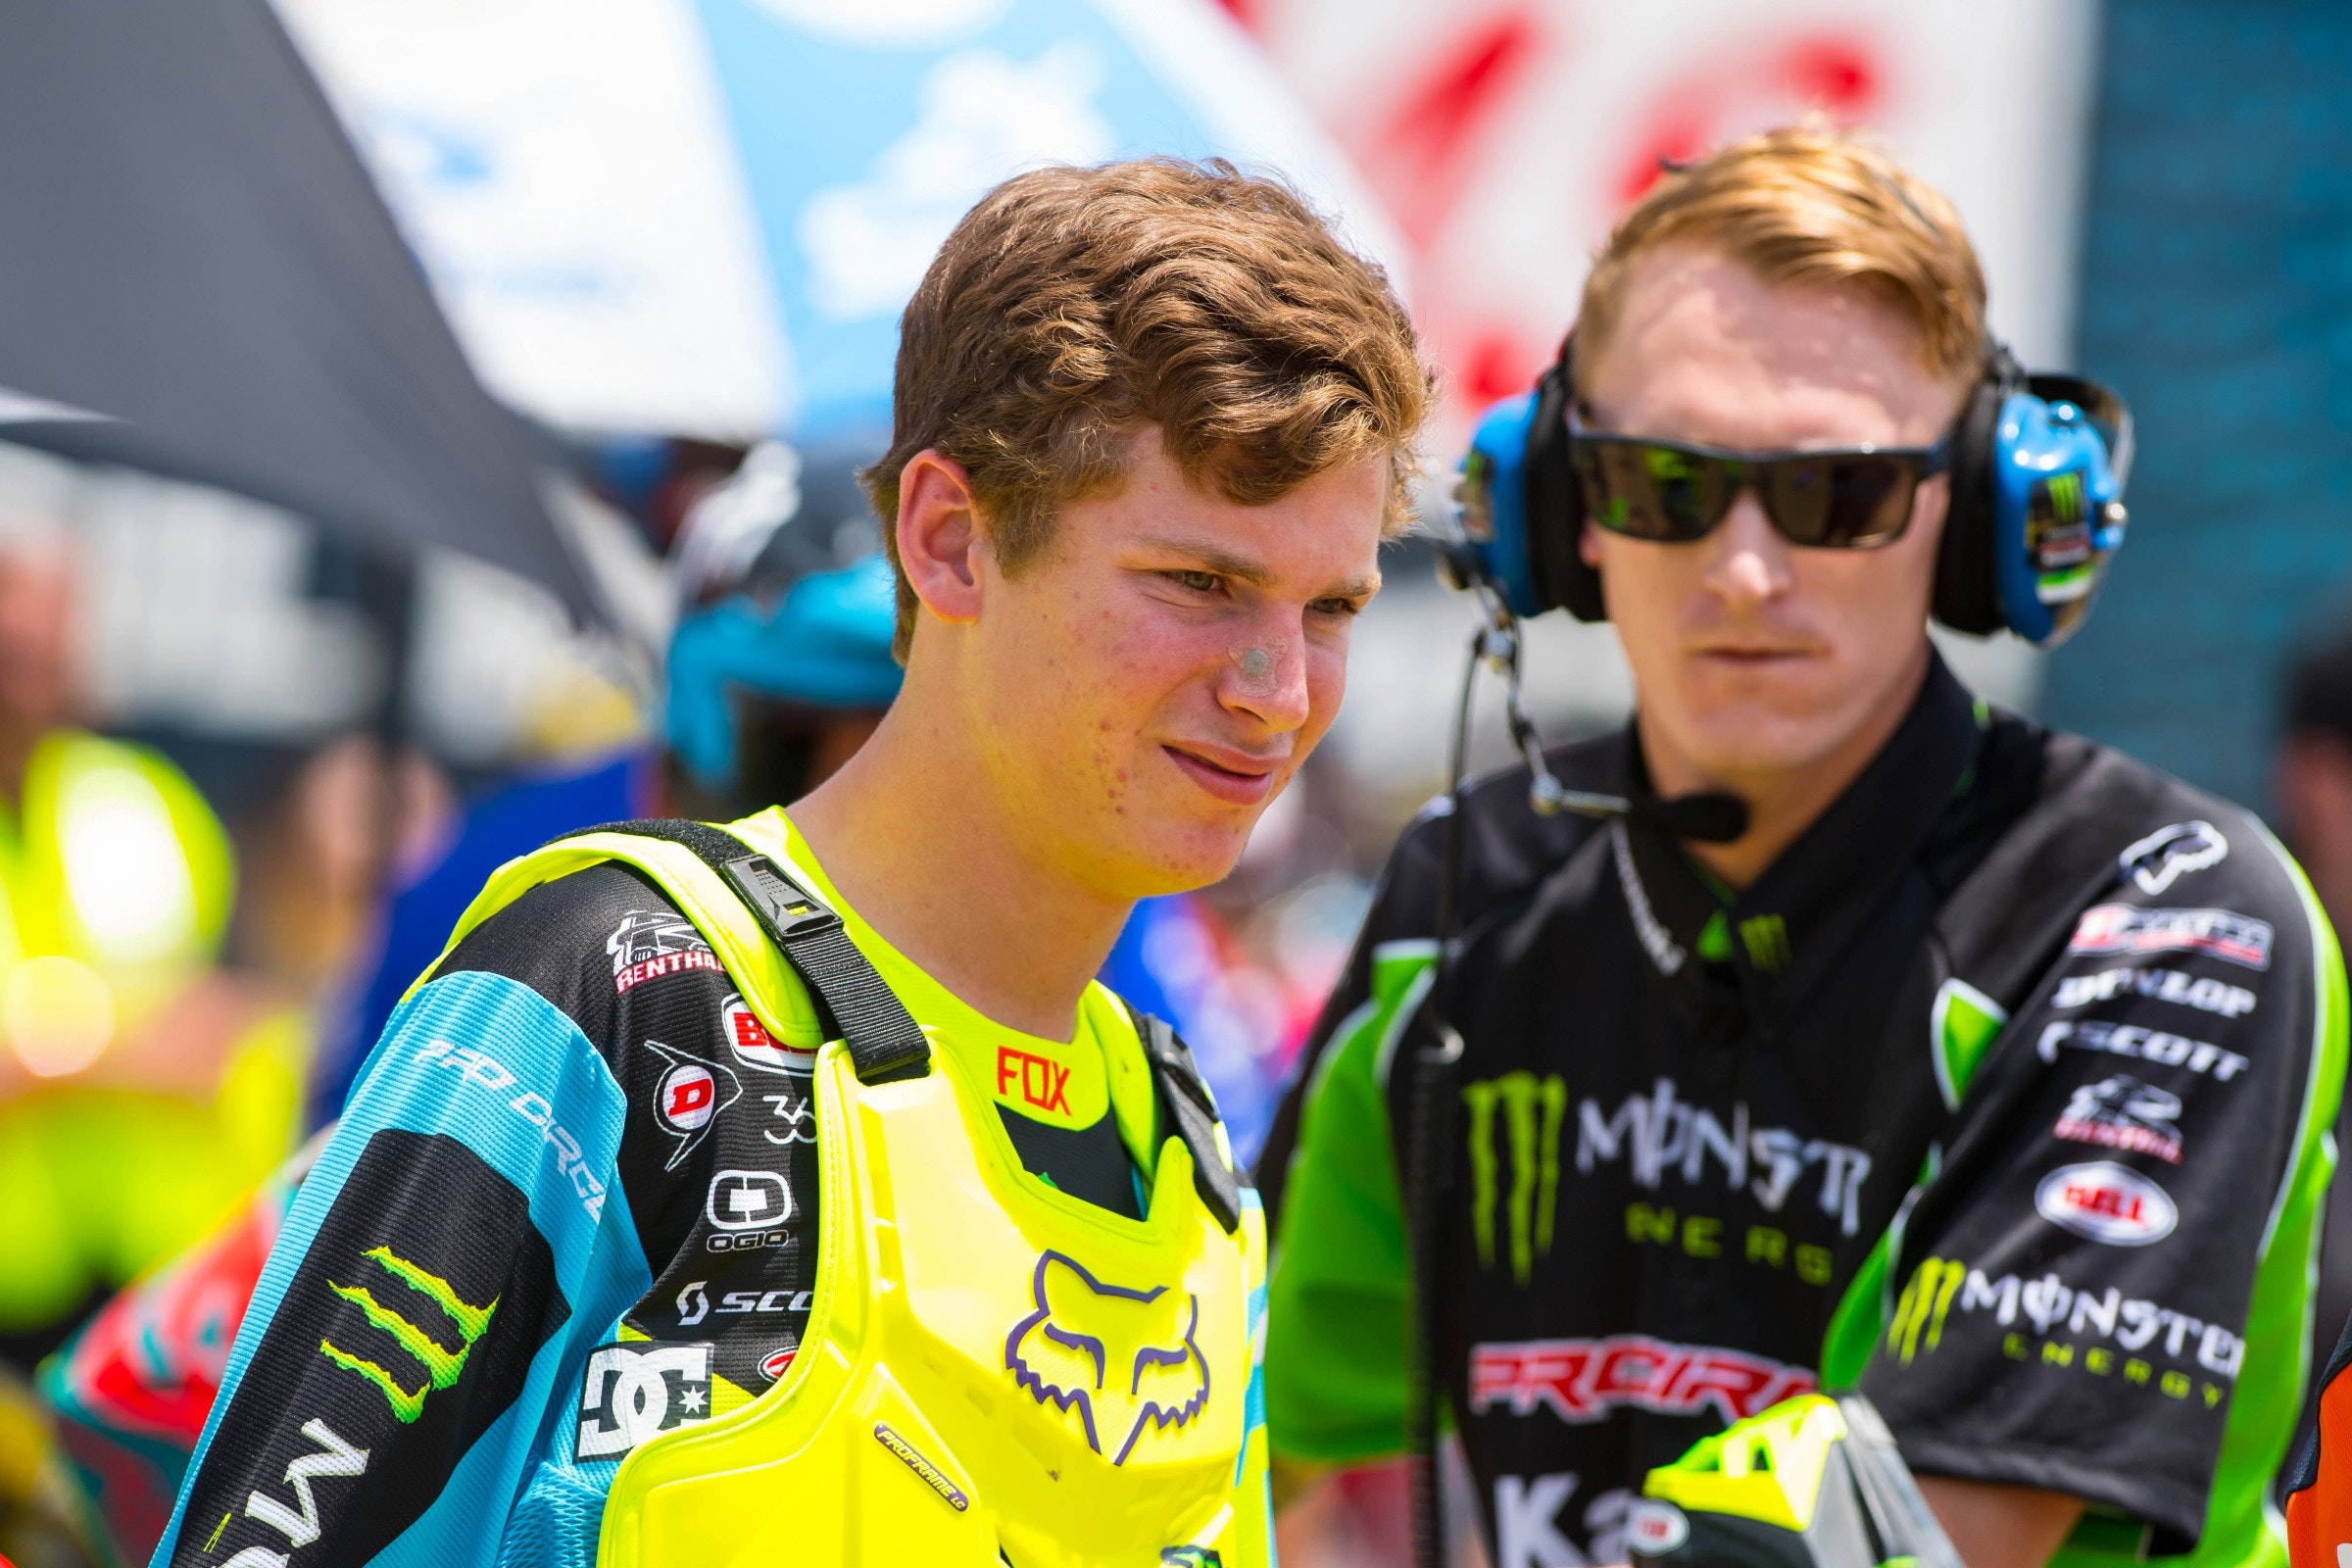 It's good to have Cianciarulo back at the races and just staying injury free would be a good goal. Oh, who are we kidding? We want even more competition at the front!